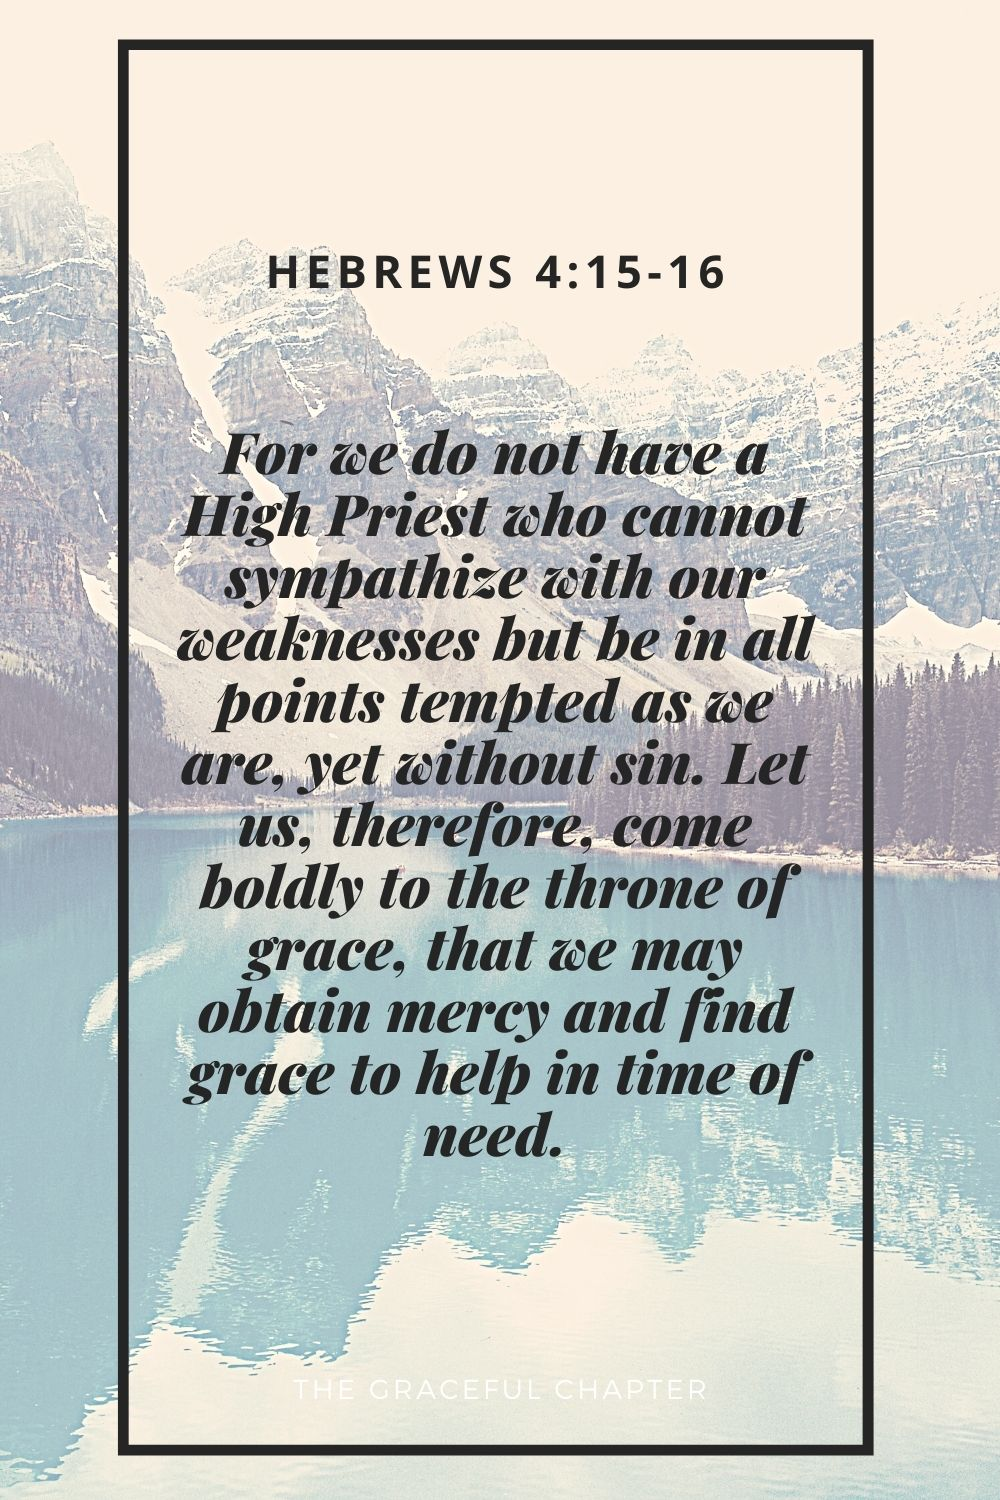 For we do not have a High Priest who cannot sympathize with our weaknesses but be in all points tempted as we are, yet without sin. Let us, therefore, come boldly to the throne of grace, that we may obtain mercy and find grace to help in time of need. Hebrews 4:15-16